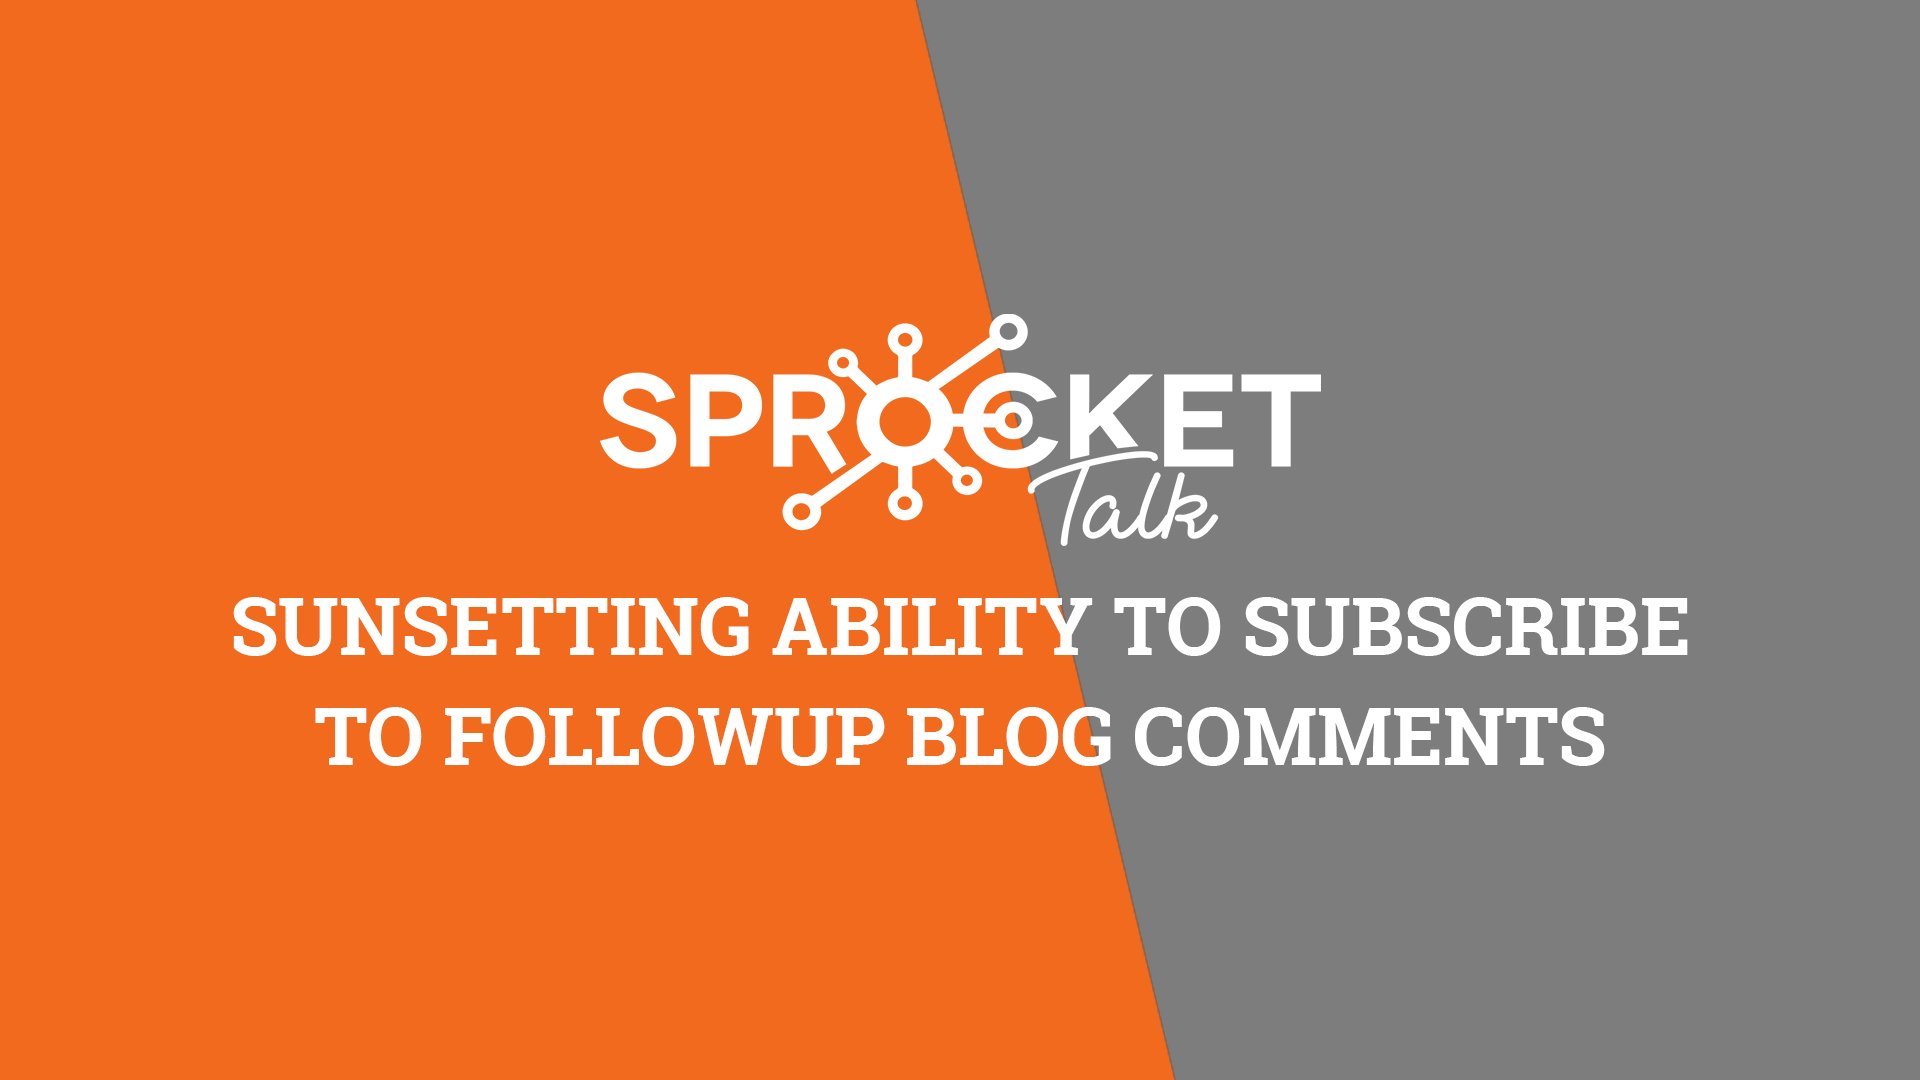 Sunsetting Ability to Subscribe to Followup Blog Comments